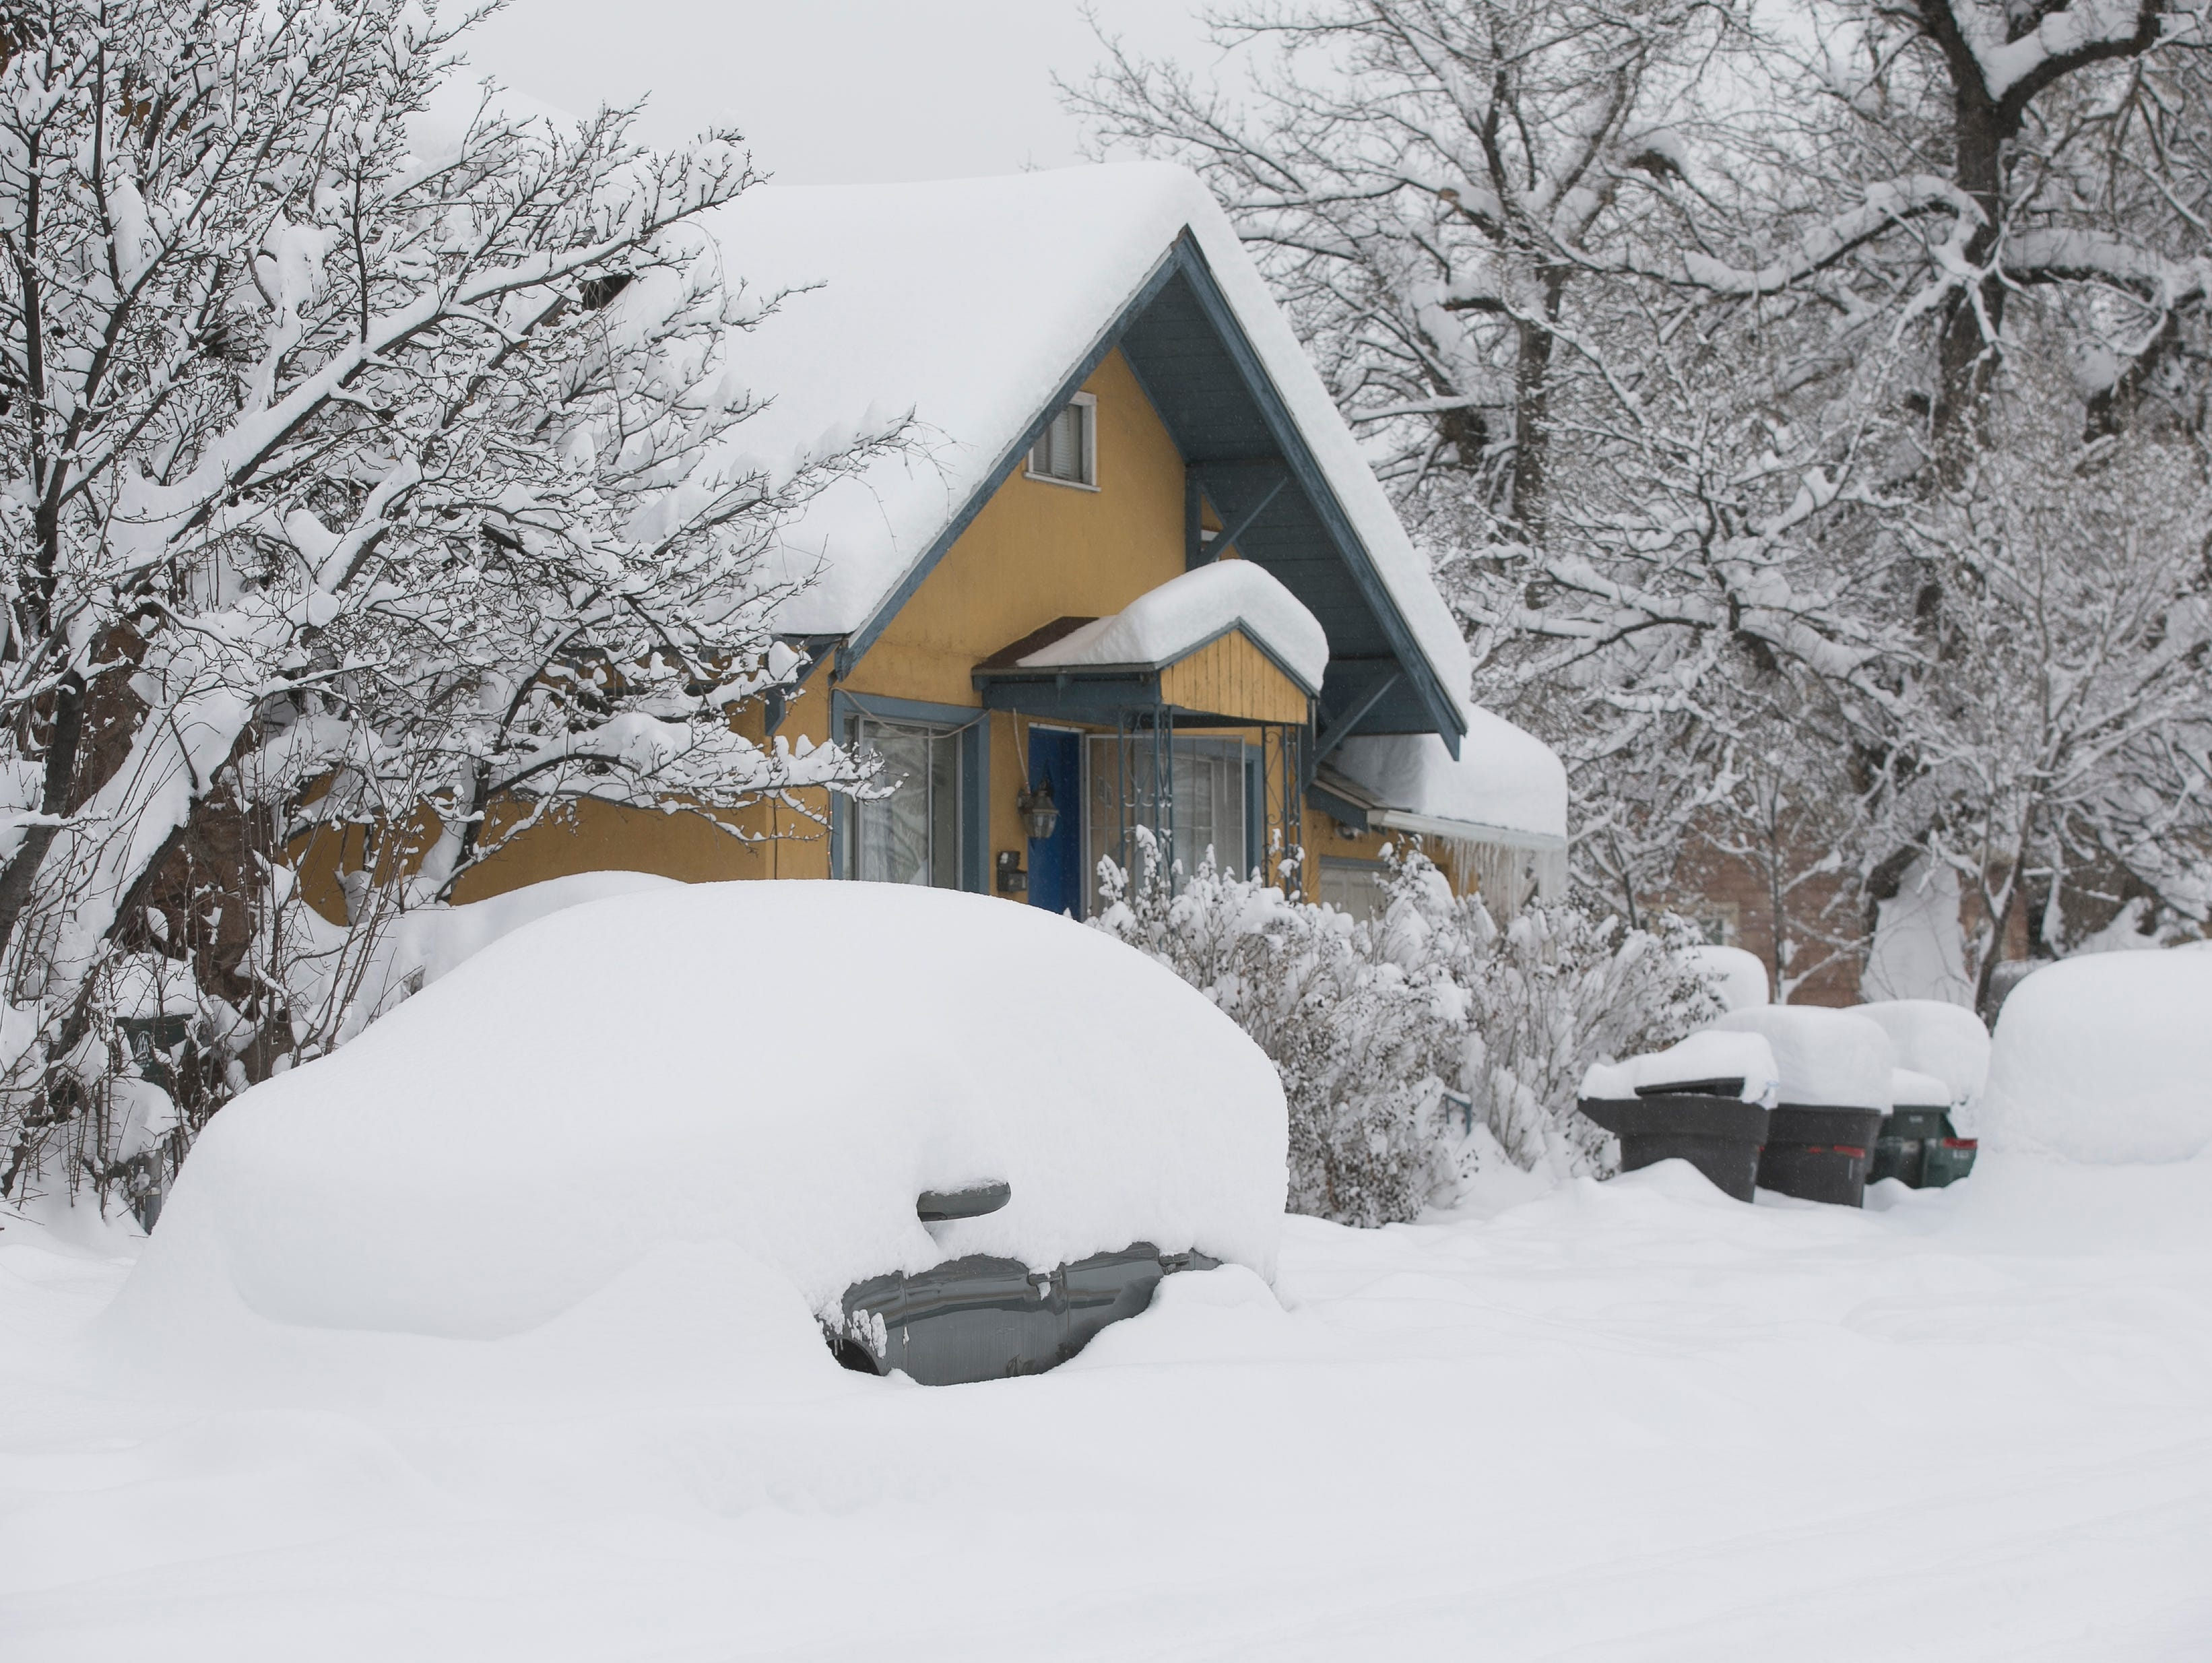 Snow blankets homes and cars the morning after a snowstorm in Flagstaff on Feb. 22, 2019. The day before, a snow storm set the record for the most amount of snowfall in a day in Flagstaff